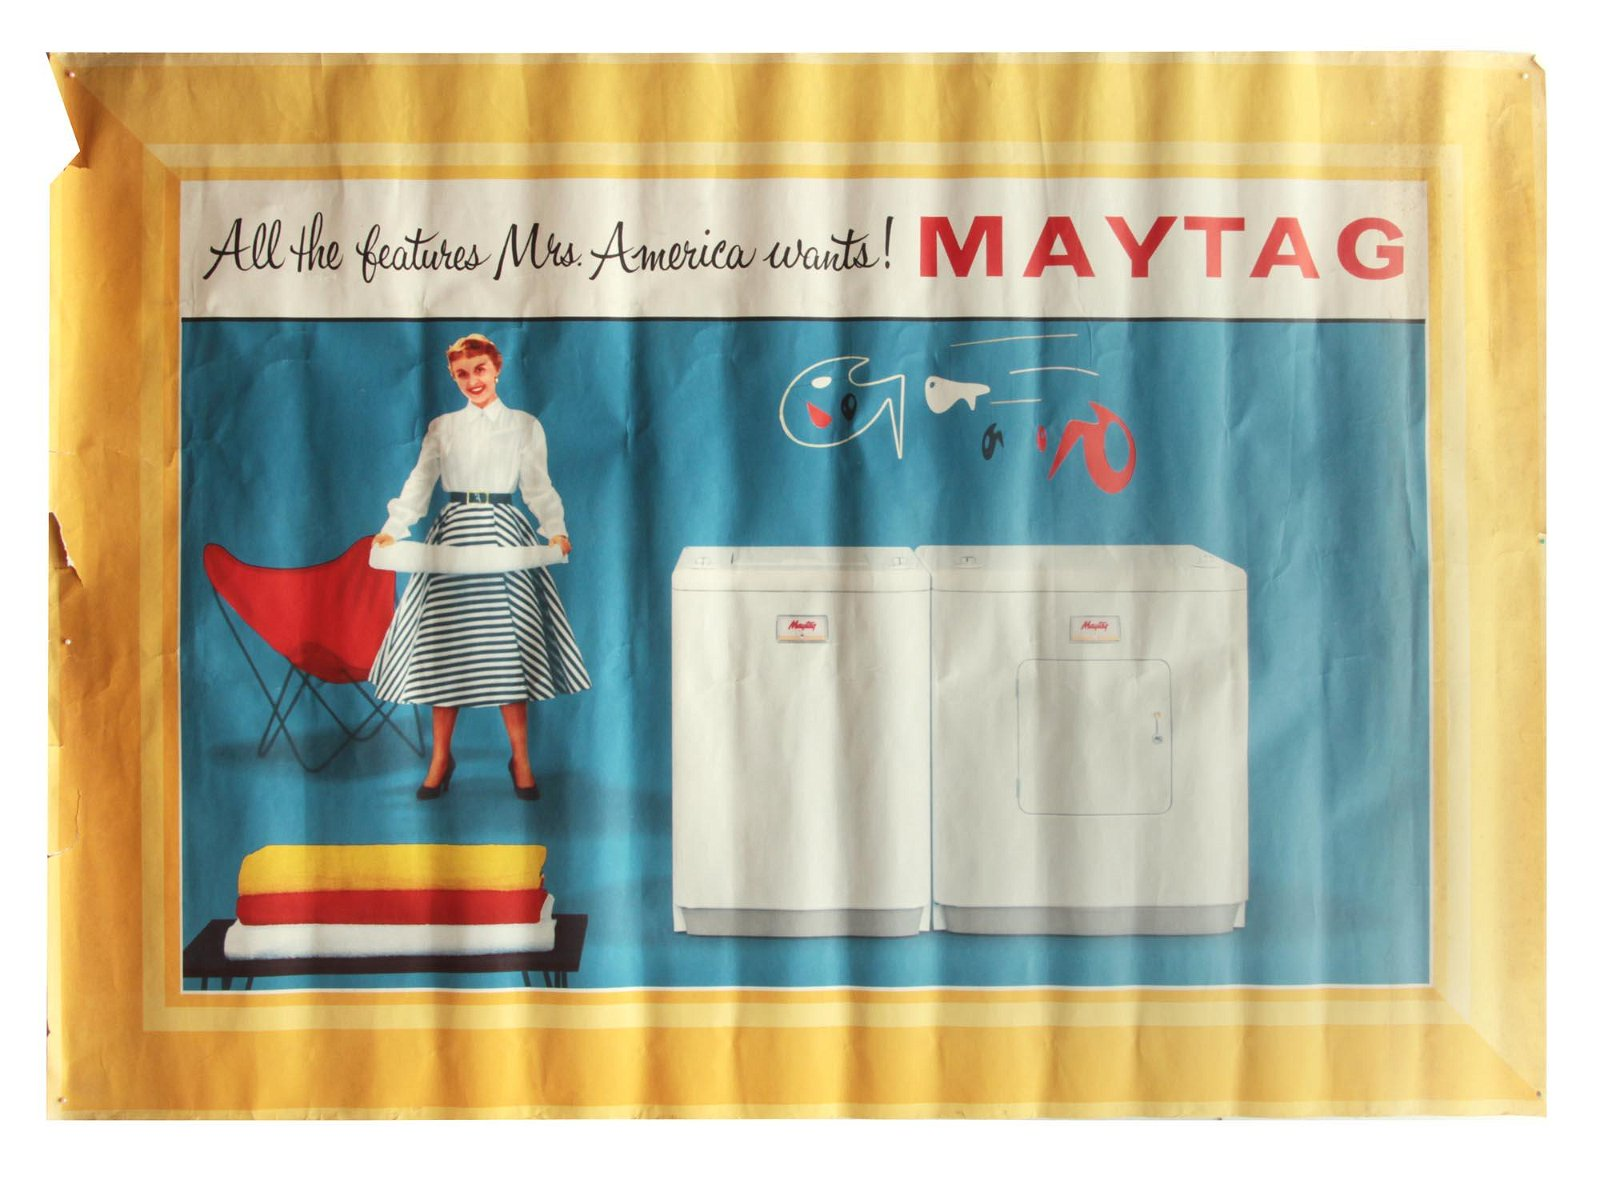 A VINTAGE AMERICAN ADVERTISING POSTER